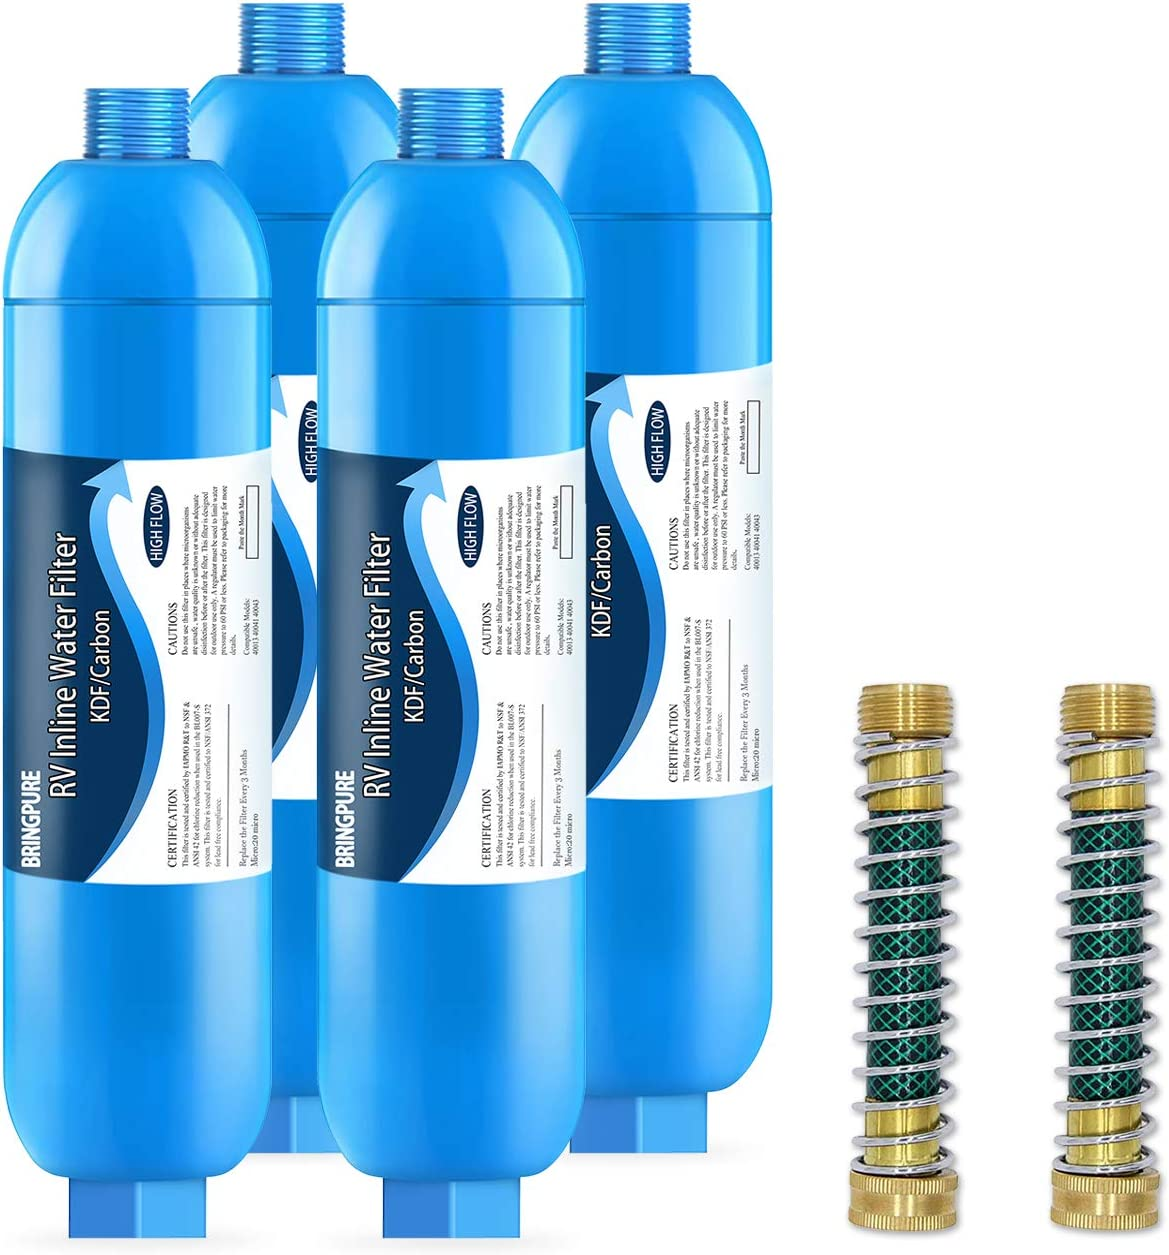 Reduces Chlorine 40041 Bringpure RV Inline KDF Water Filter with Flexible Hose Protector Fluoride and Bad Taste 40043 Lead Compatible with Camco 40013 Odor 4 Packs NSF Certiified